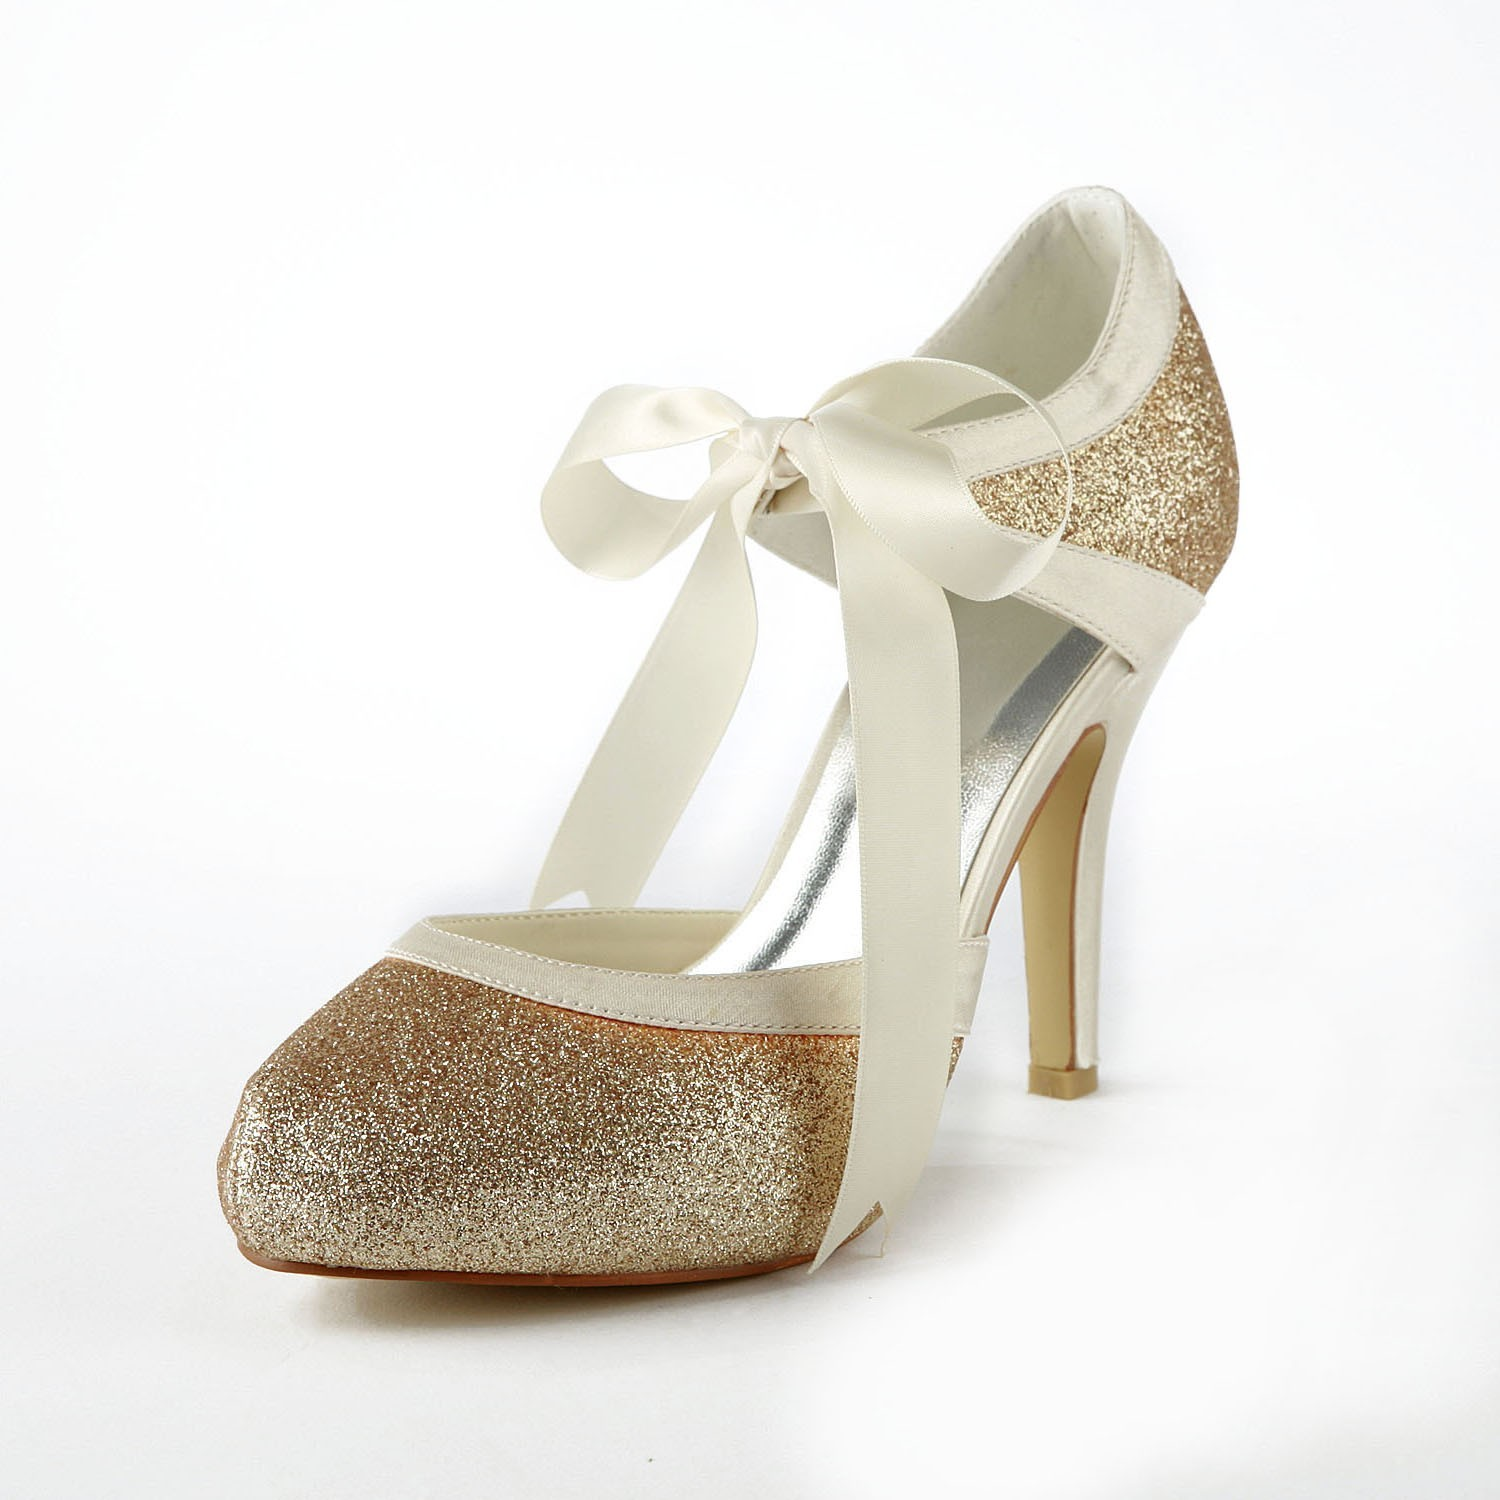 The Most Stylish Women's Satin Stiletto Heel Pumps With Sparkling Glitter  White Wedding Shoes